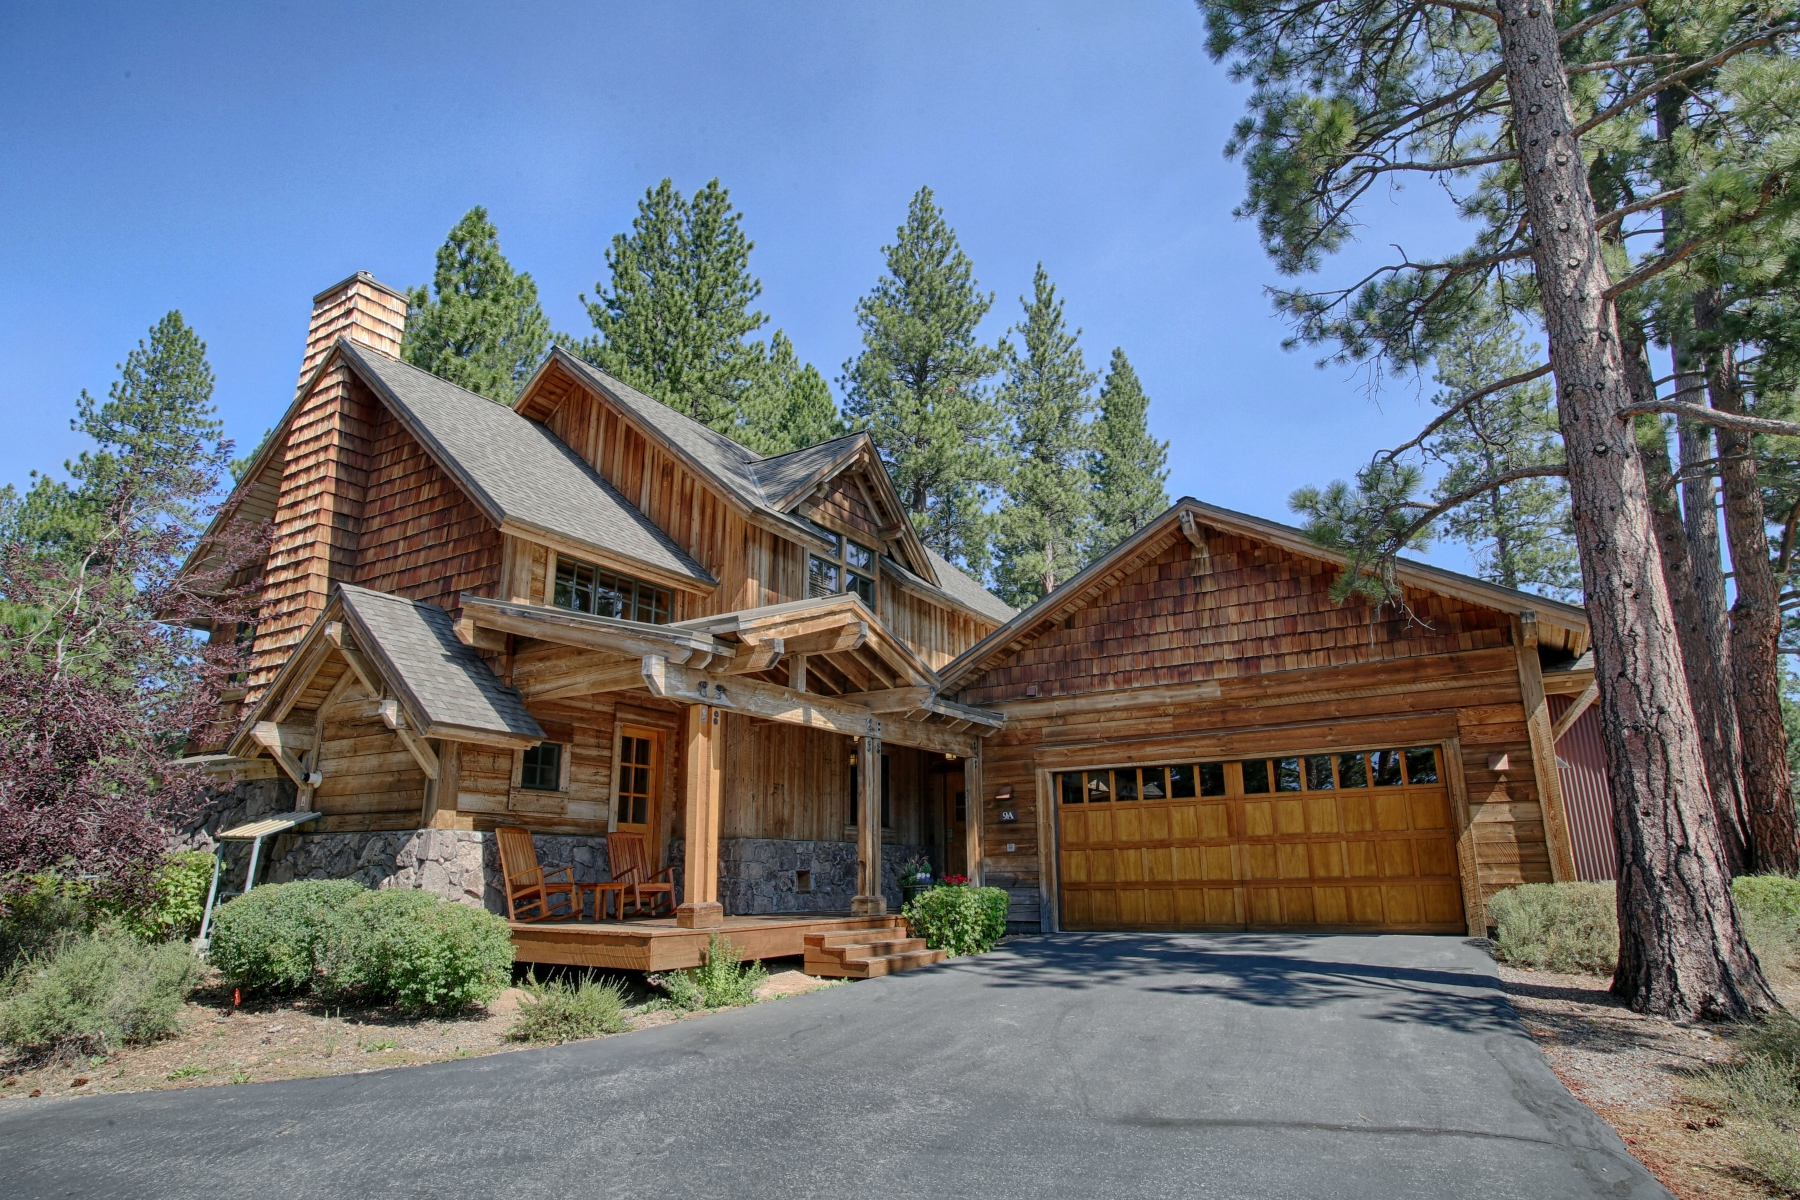 Single Family Home for Active at 12202 Lookout Loop F20-24 Truckee California, 96161 12202 Lookout Loop F20-24 Truckee, California 96161 United States